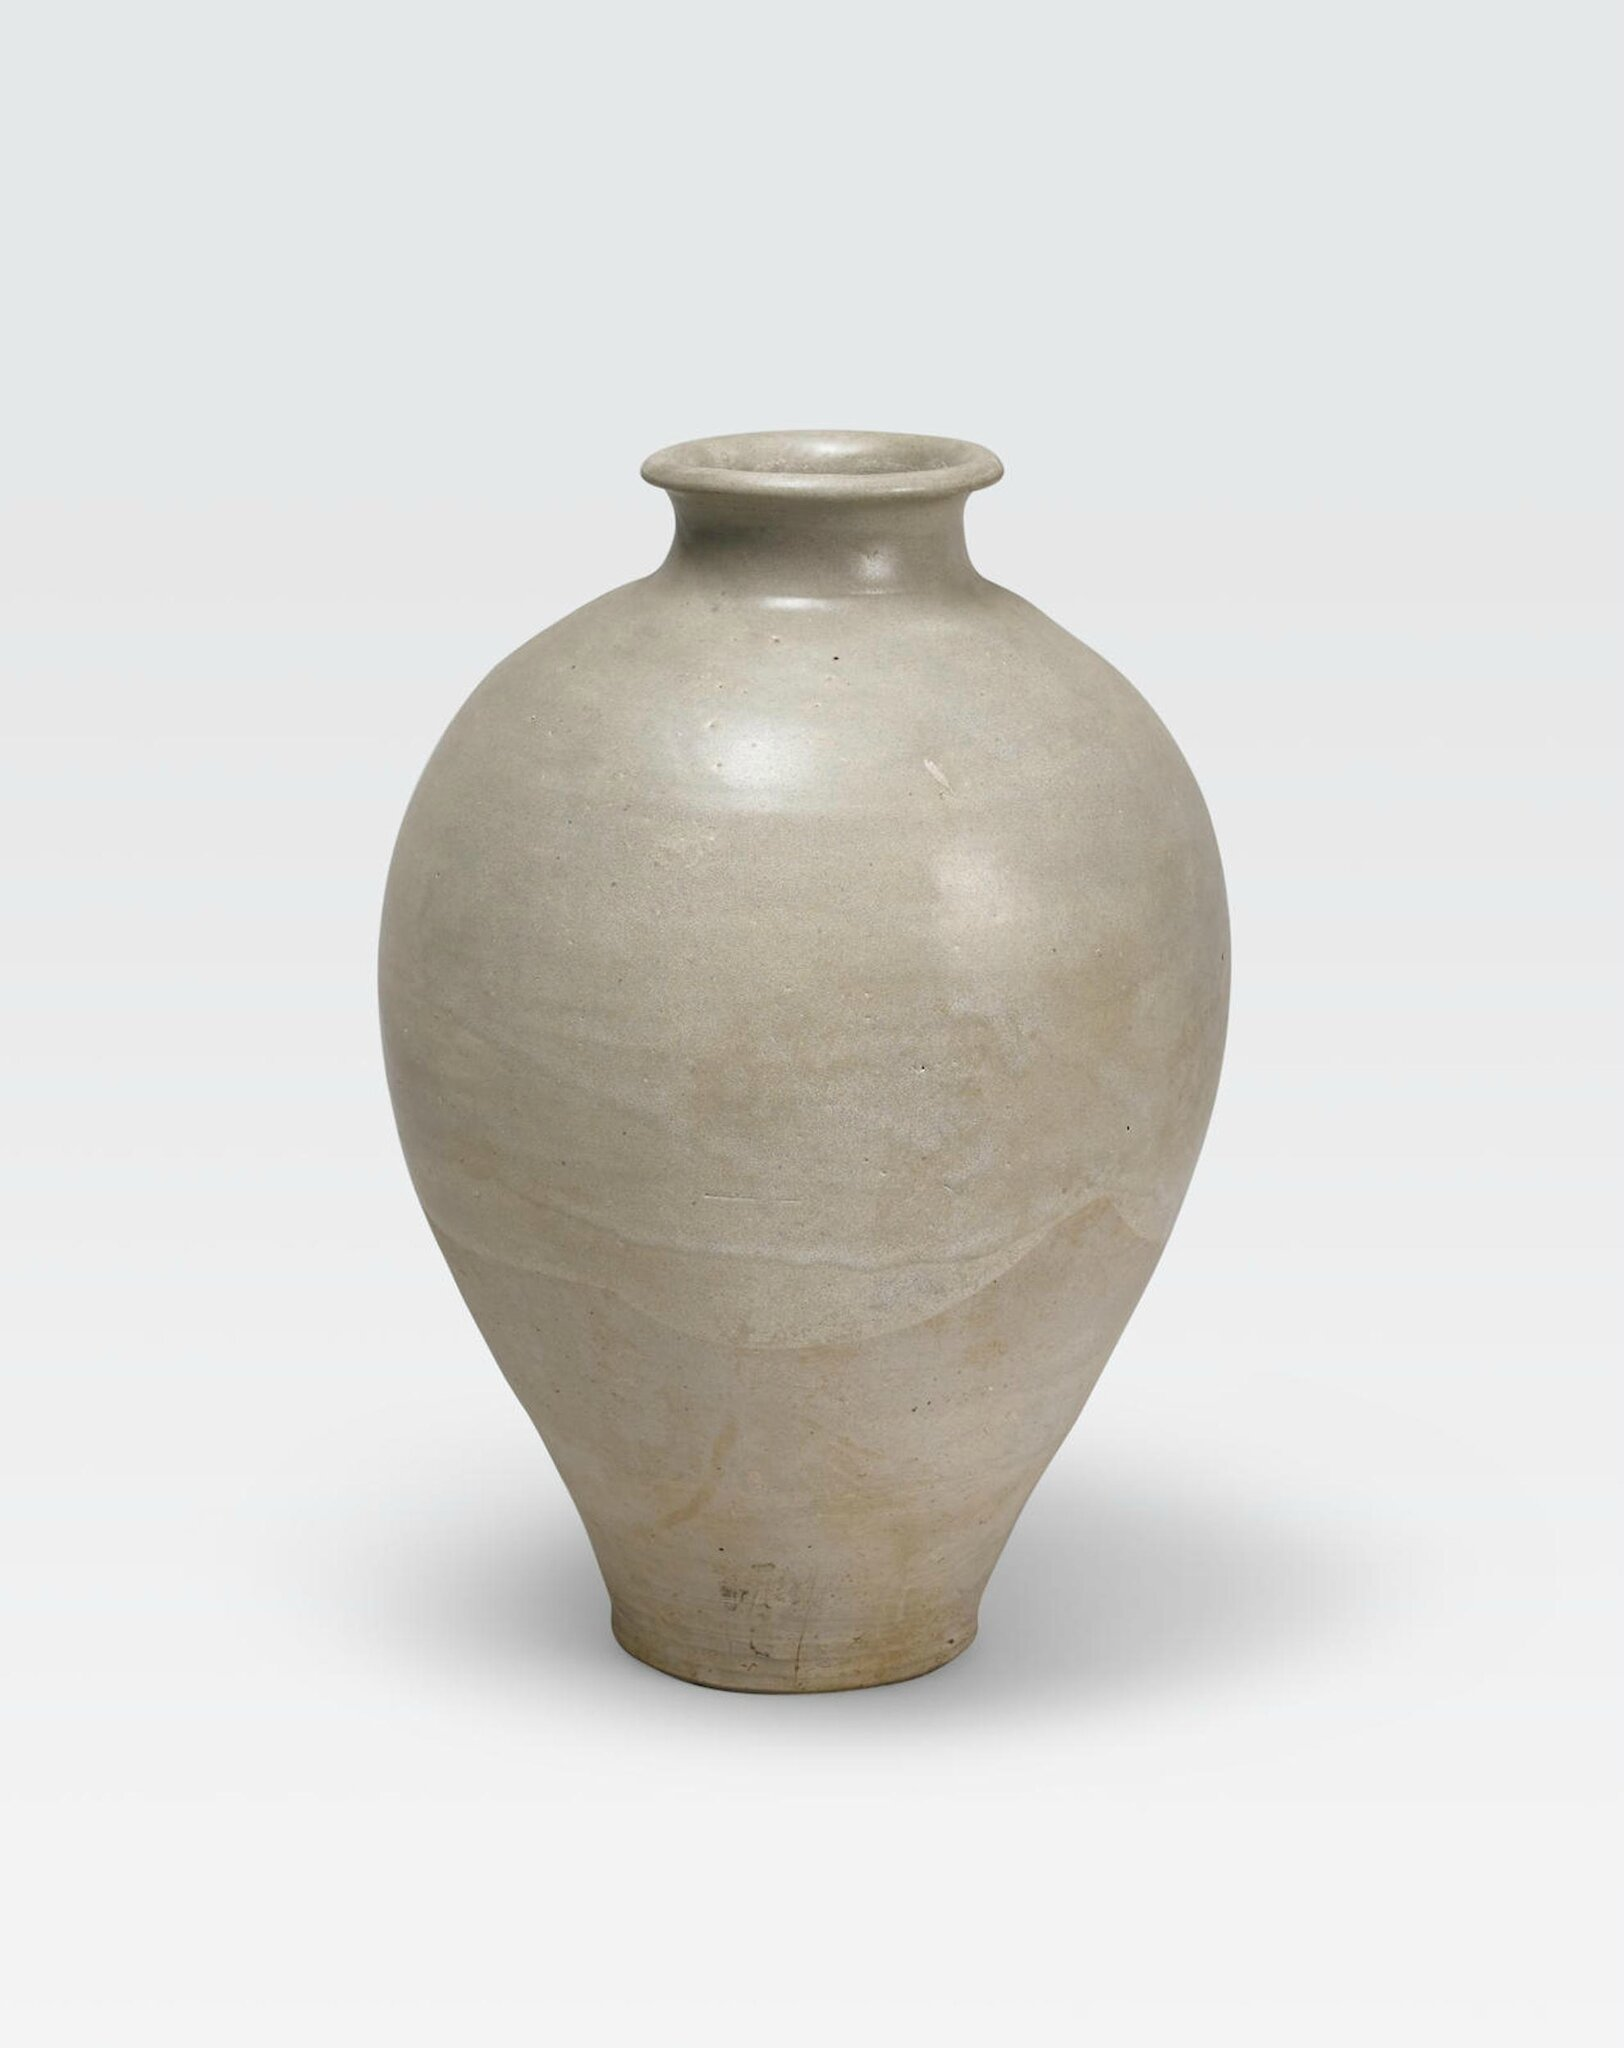 A straw glazed stoneware ovoid jar, Tang dynasty (618-907)